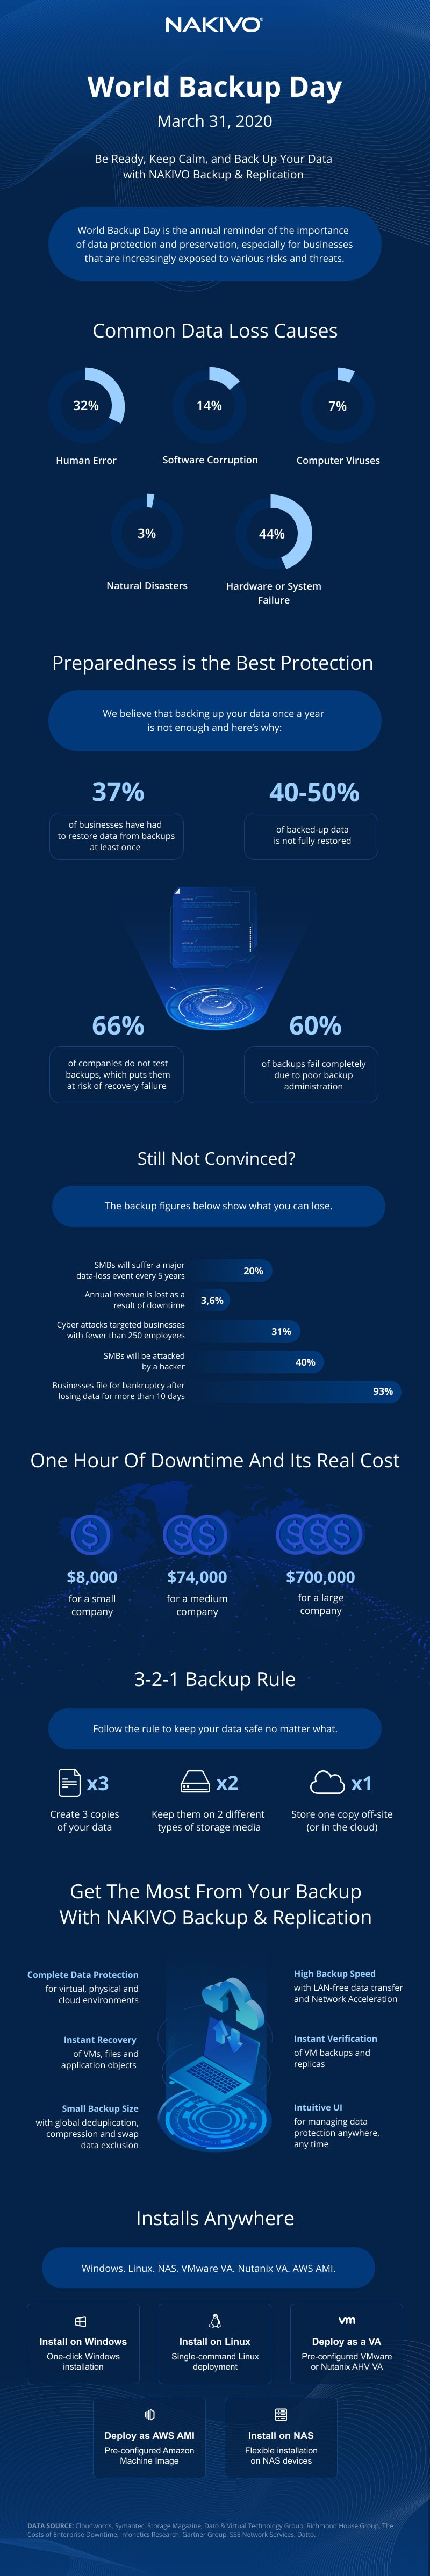 Should You Back Up Microsoft Office 365 Data? #infographic